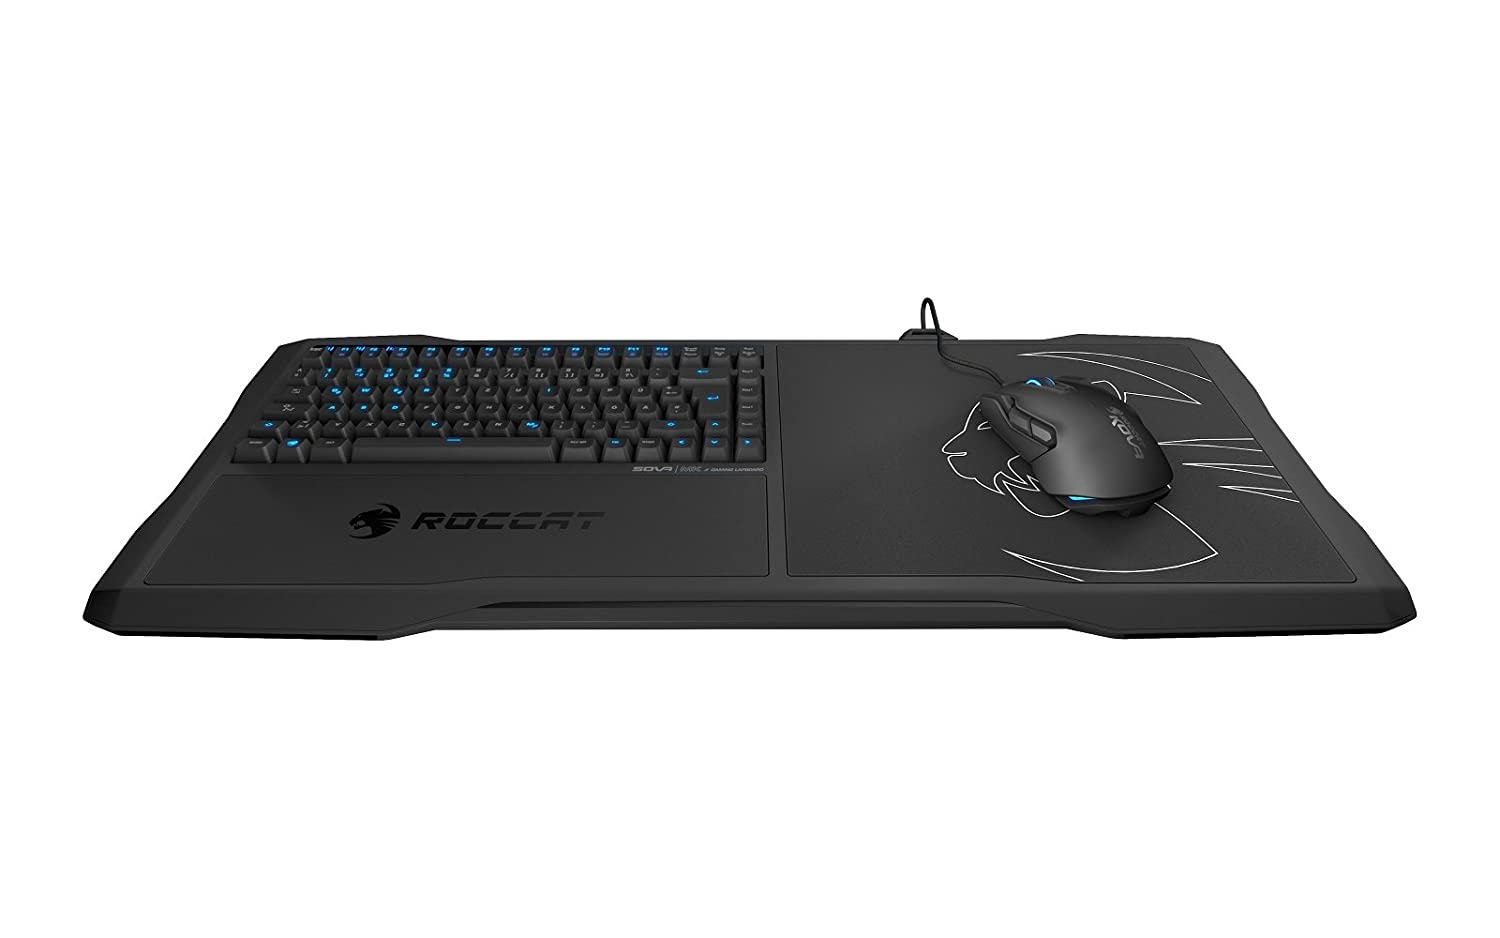 174d79cce21 Roccat Sova - Mechanical Gaming Lapboard for Gaming on the Couch with  Cushion, Illuminated Backlit, Hotkeys, Programmable Keys, Quiet &  Ergonomic, ...